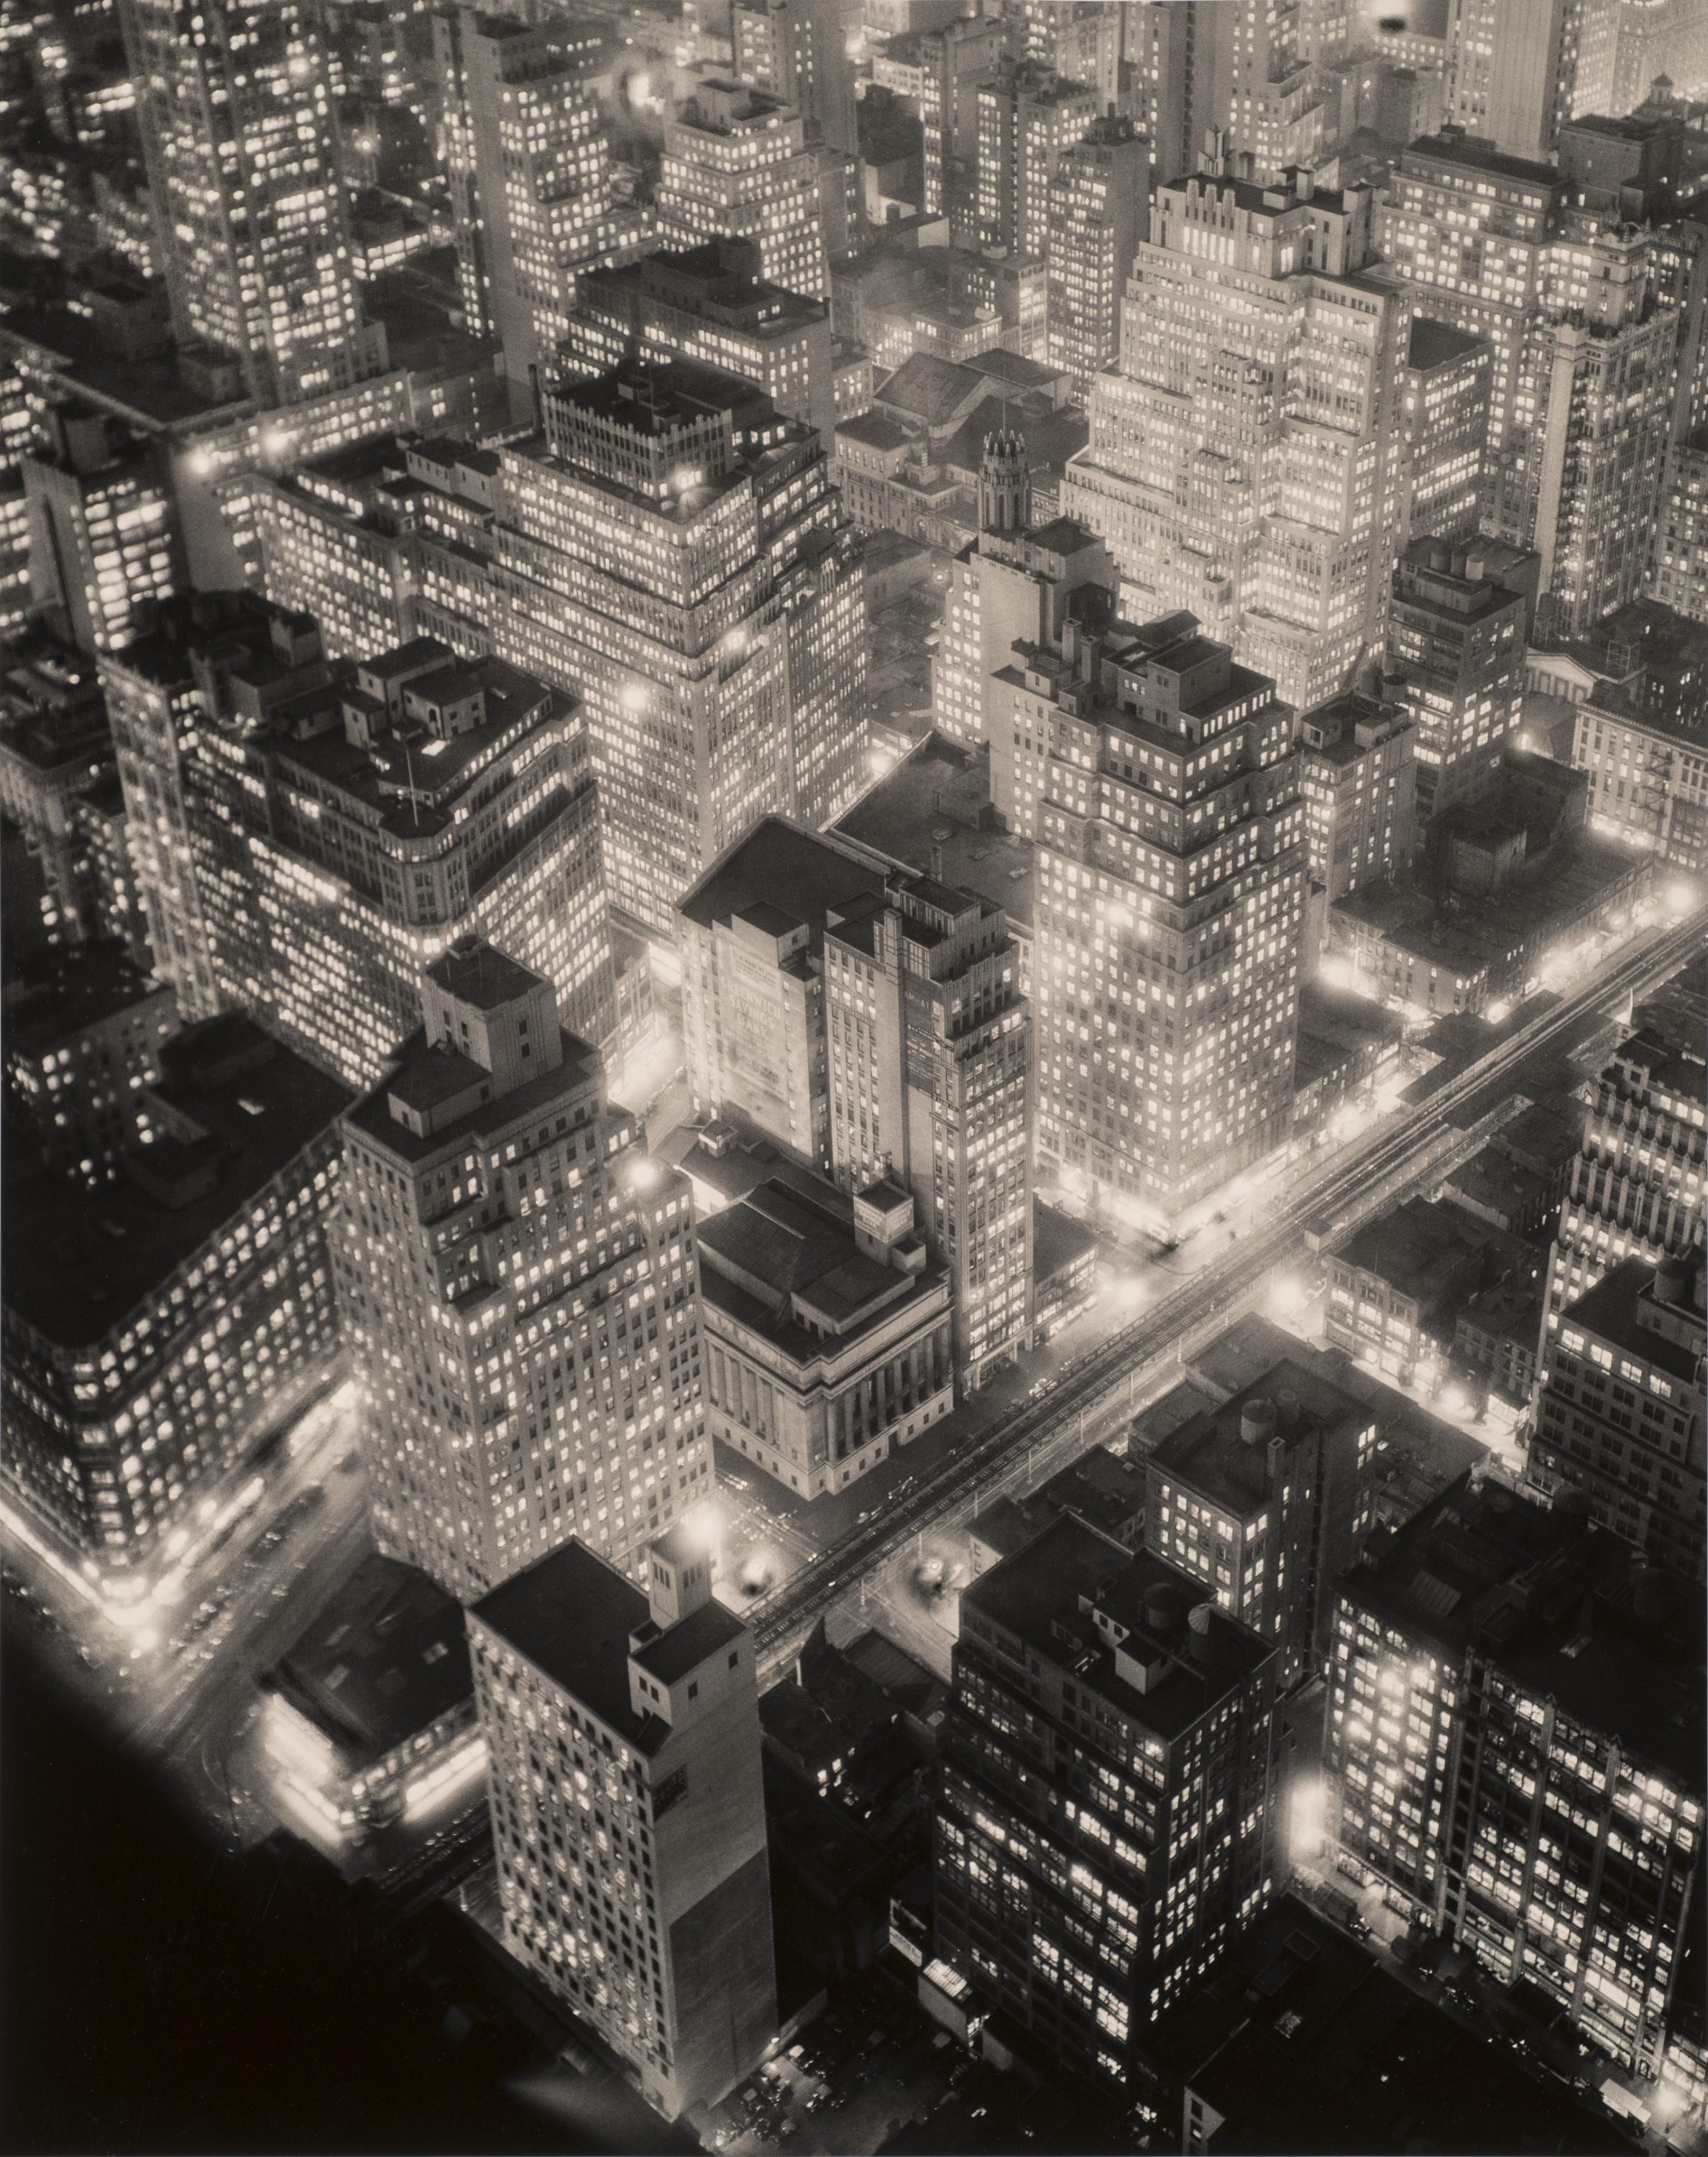 A black-and-white photograph of New York City seen from above at night. Towering, blocky skyscrapers emerge from the ground, glowing from tiny square windows of light, lining streets filled with blurs and flashes of light.